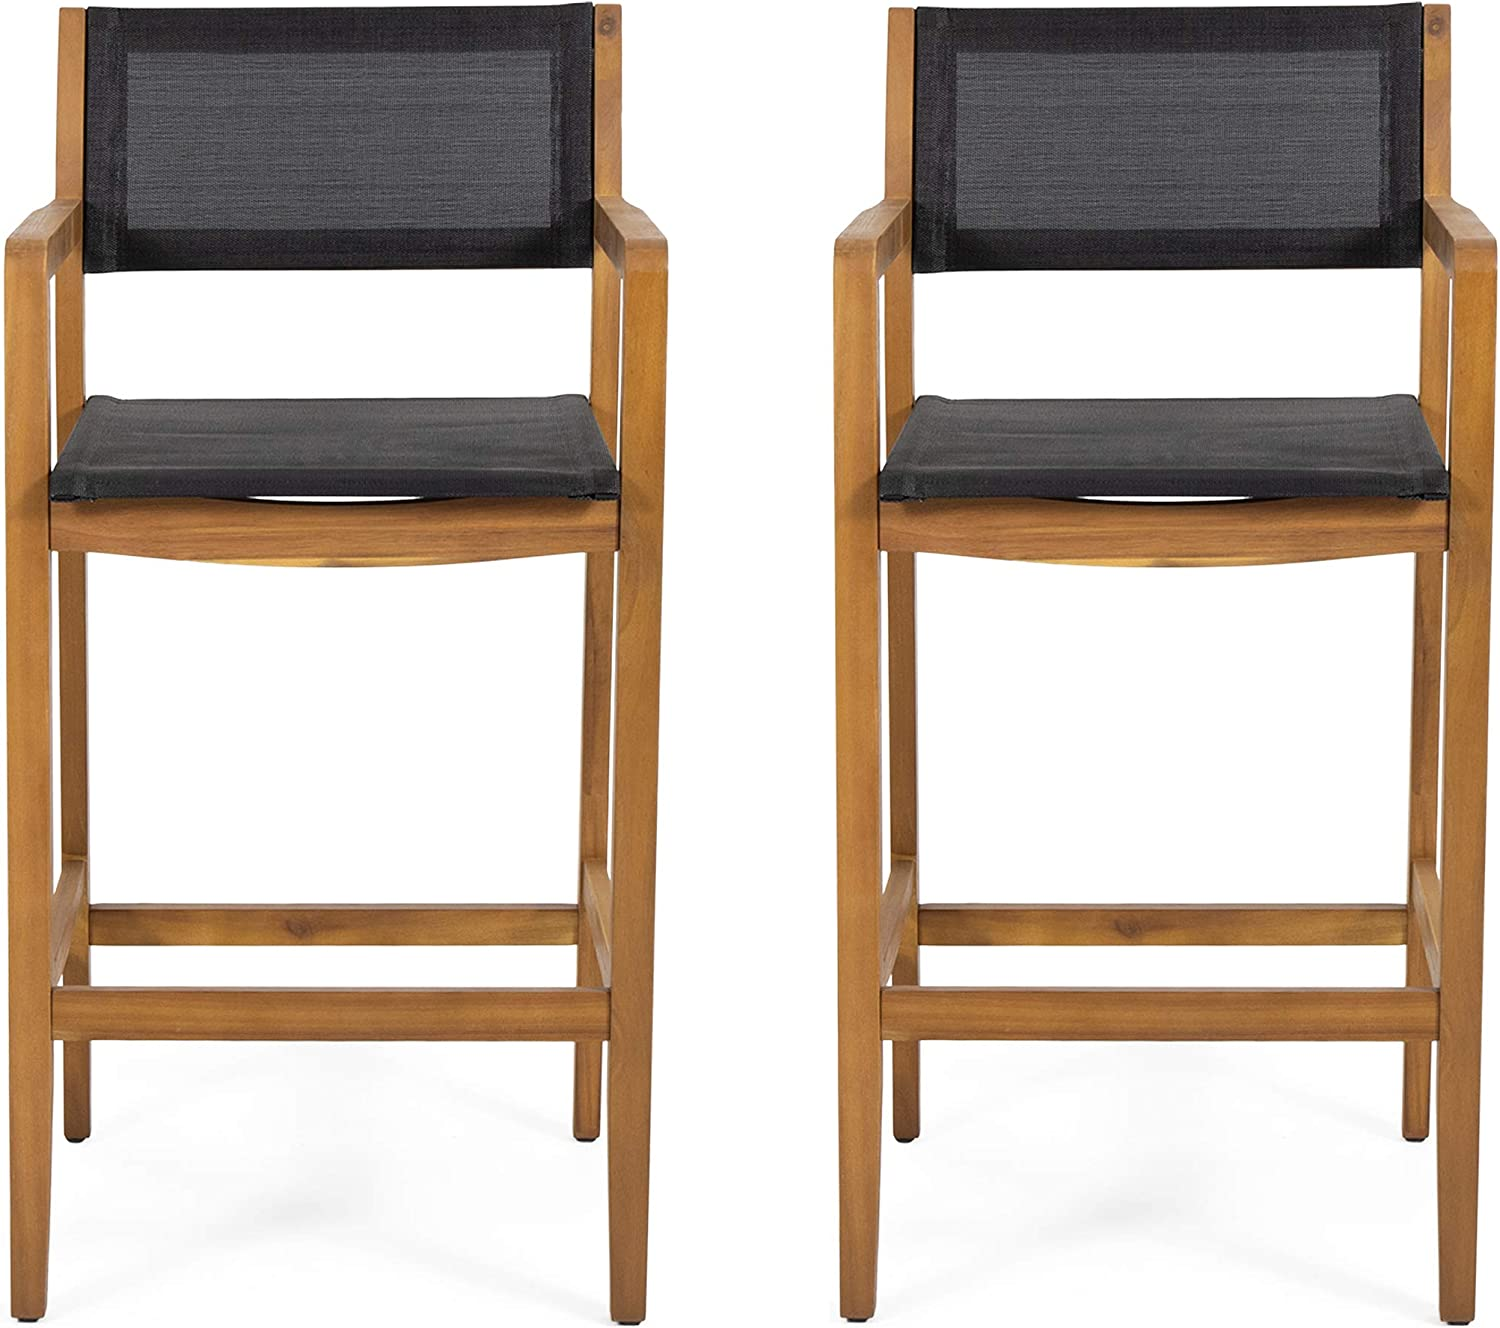 Christopher Knight Home 312830 Calista Acacia Wood Barstools with Outdoor Mesh (Set of 2), Teak and Black